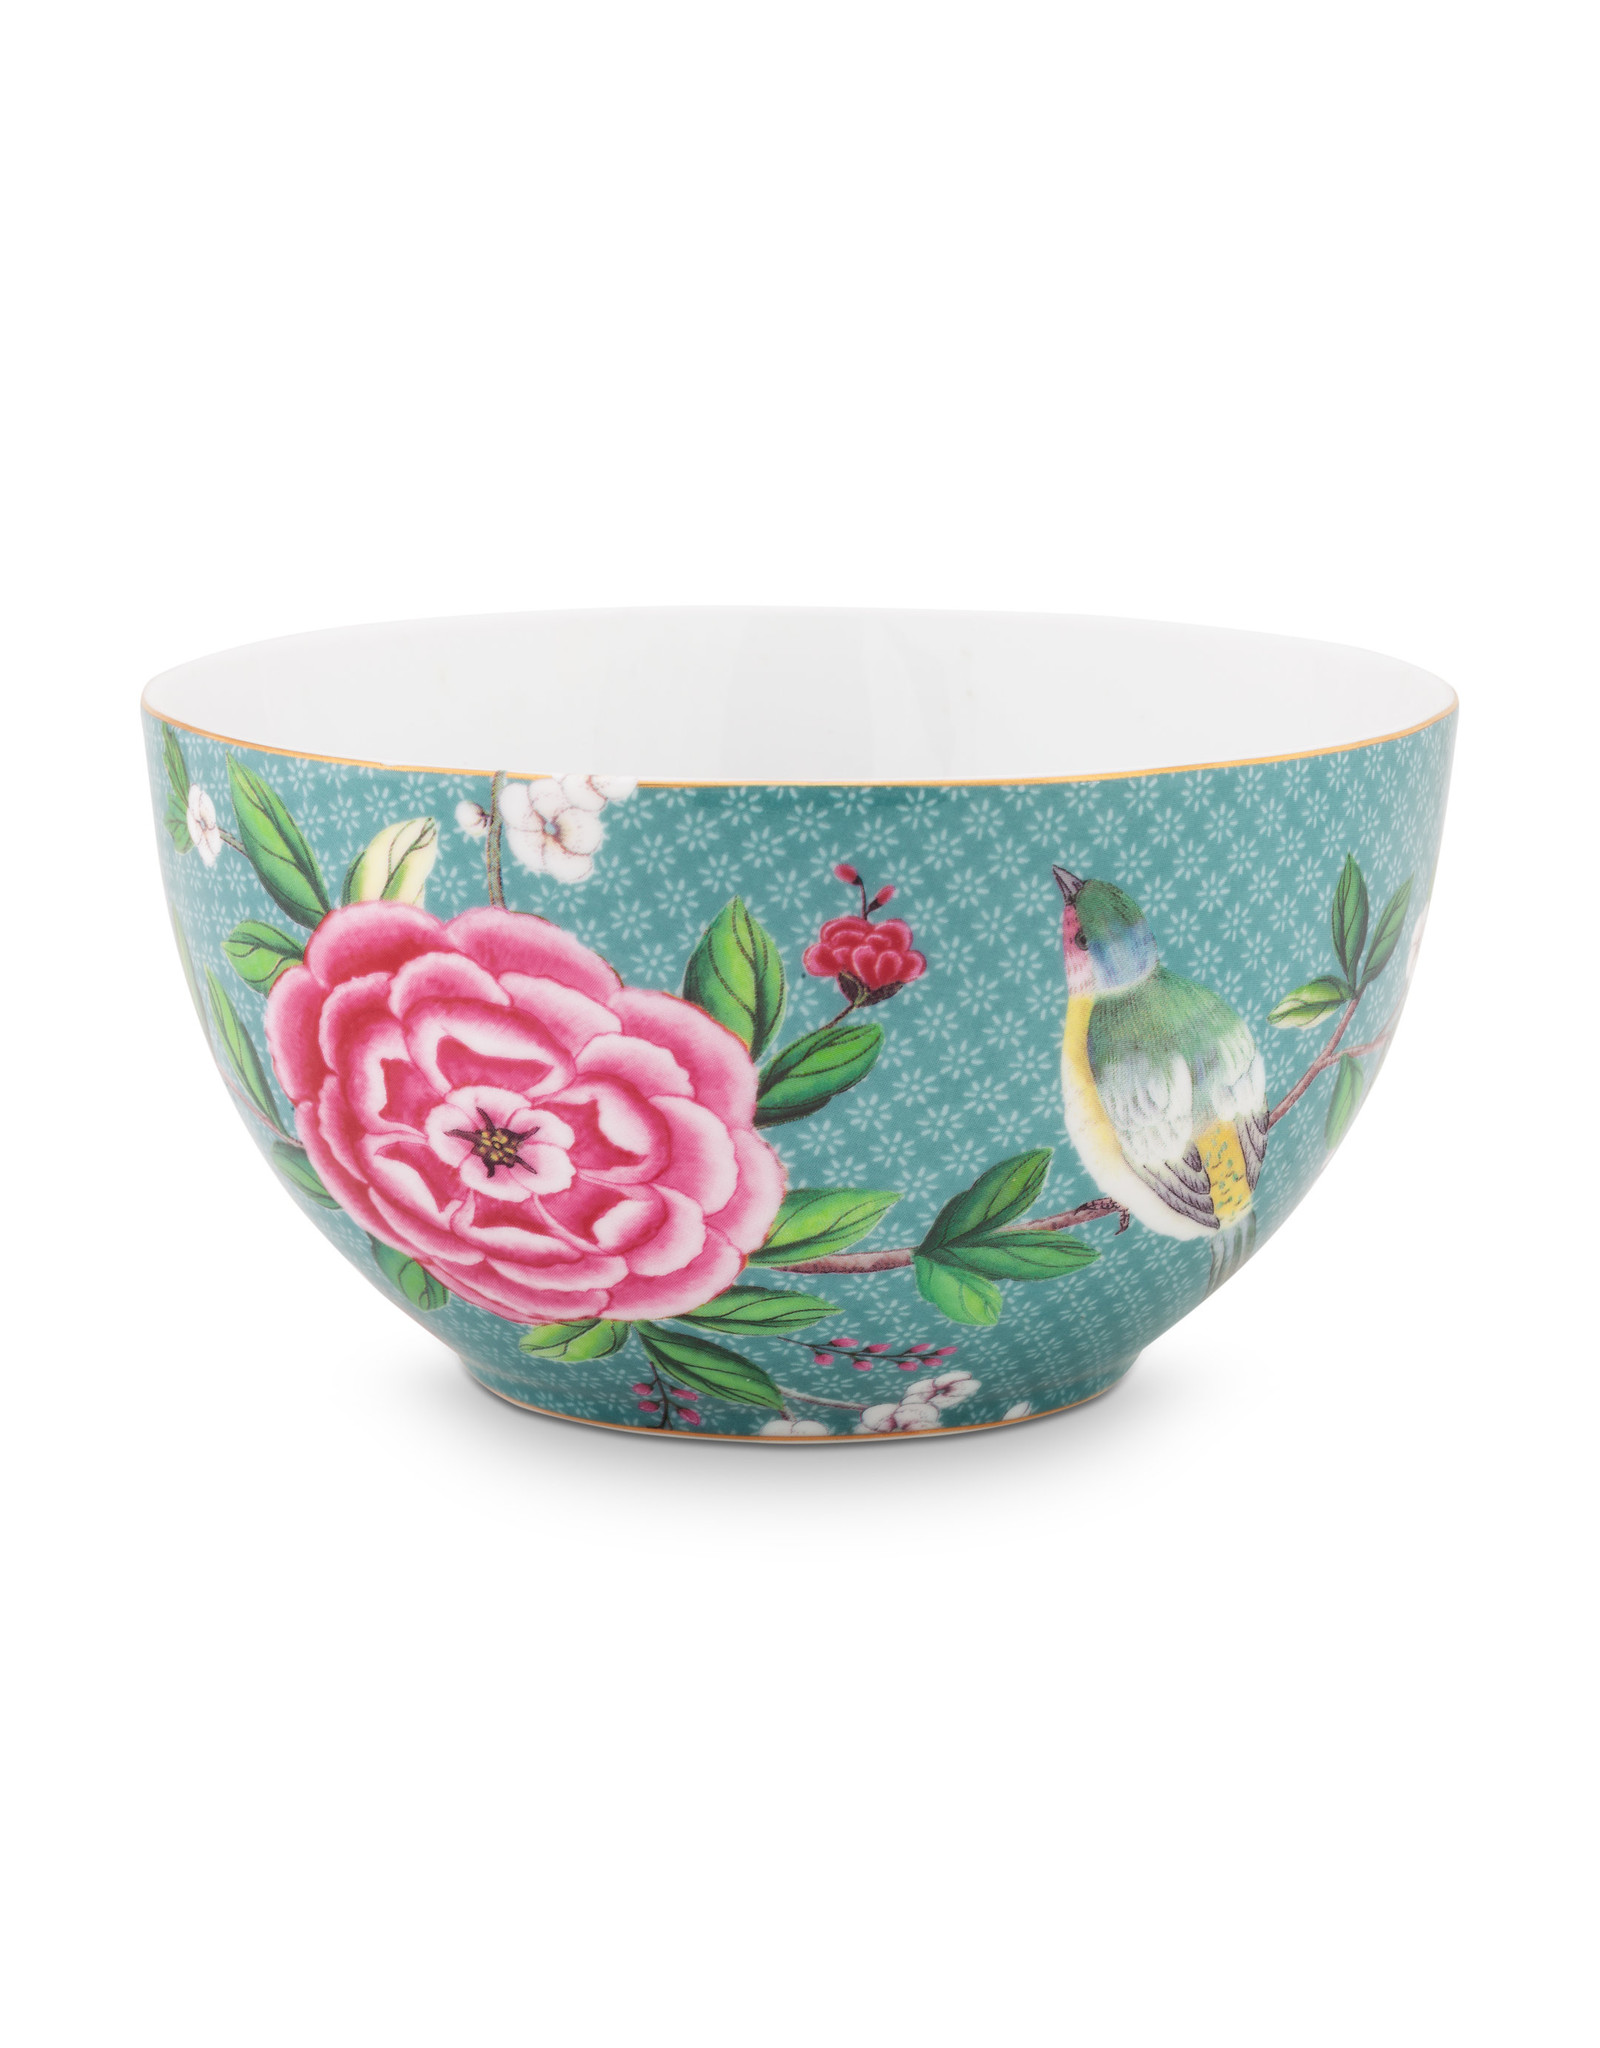 pip studio Bowl Blushing birds Blue 15cm